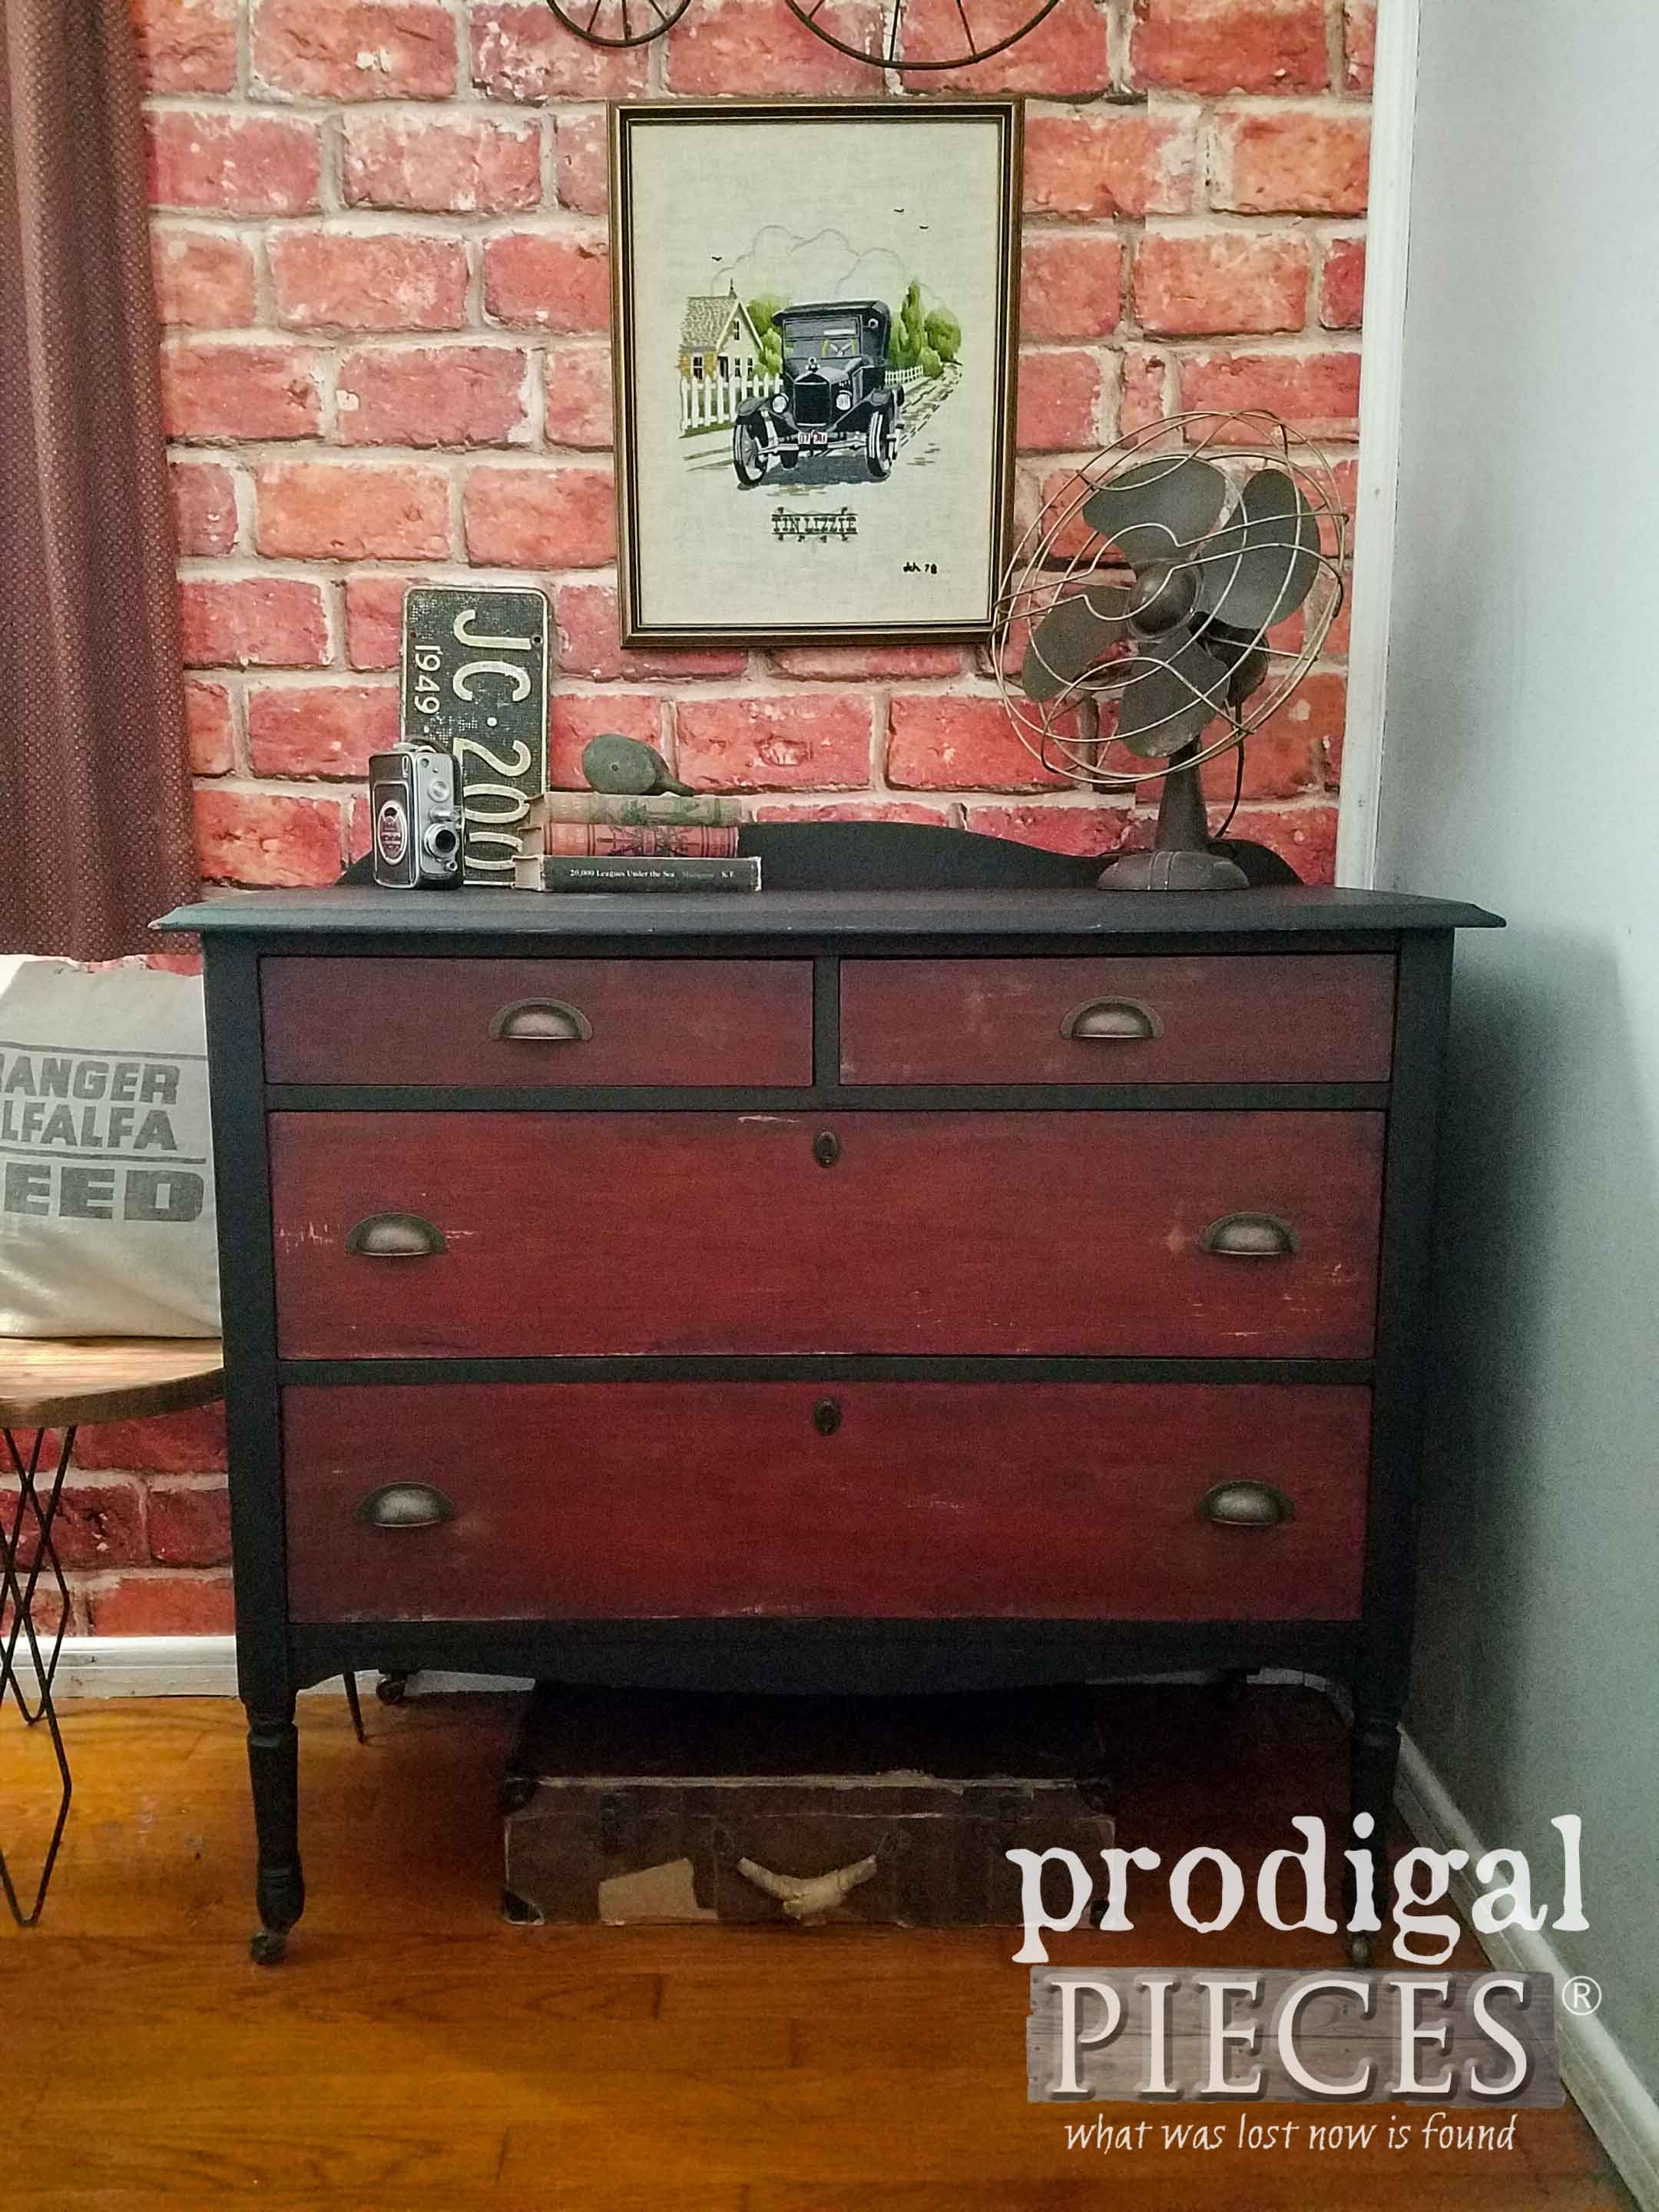 There's no shortage of furniture at thrift stores. You can find great pieces that need a DIY makeover to add something extra to a room in your home